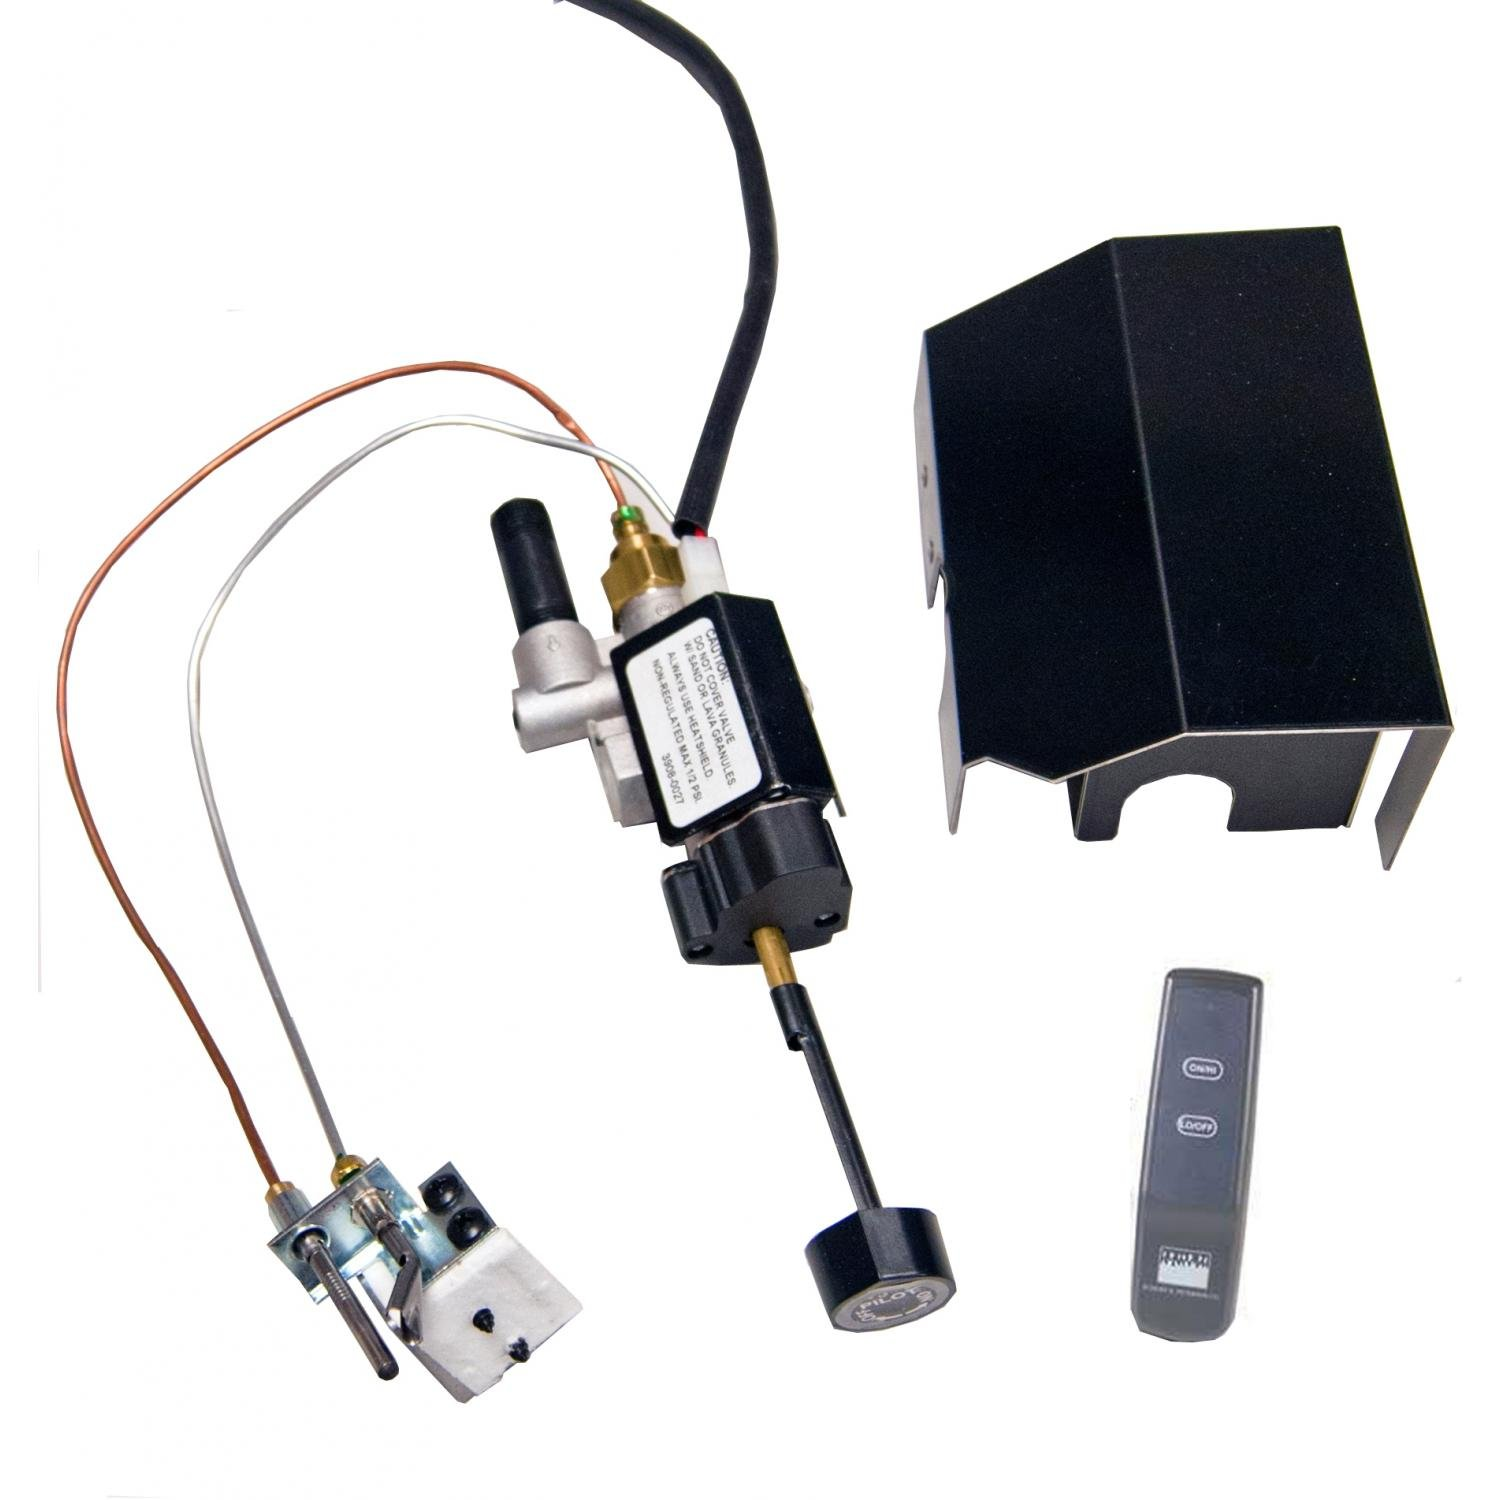 Peterson Real Fyre Low Profile Propane Gas Automatic Pilot Kit With Basic Variable Flame Height Remote by Peterson Real Fyre